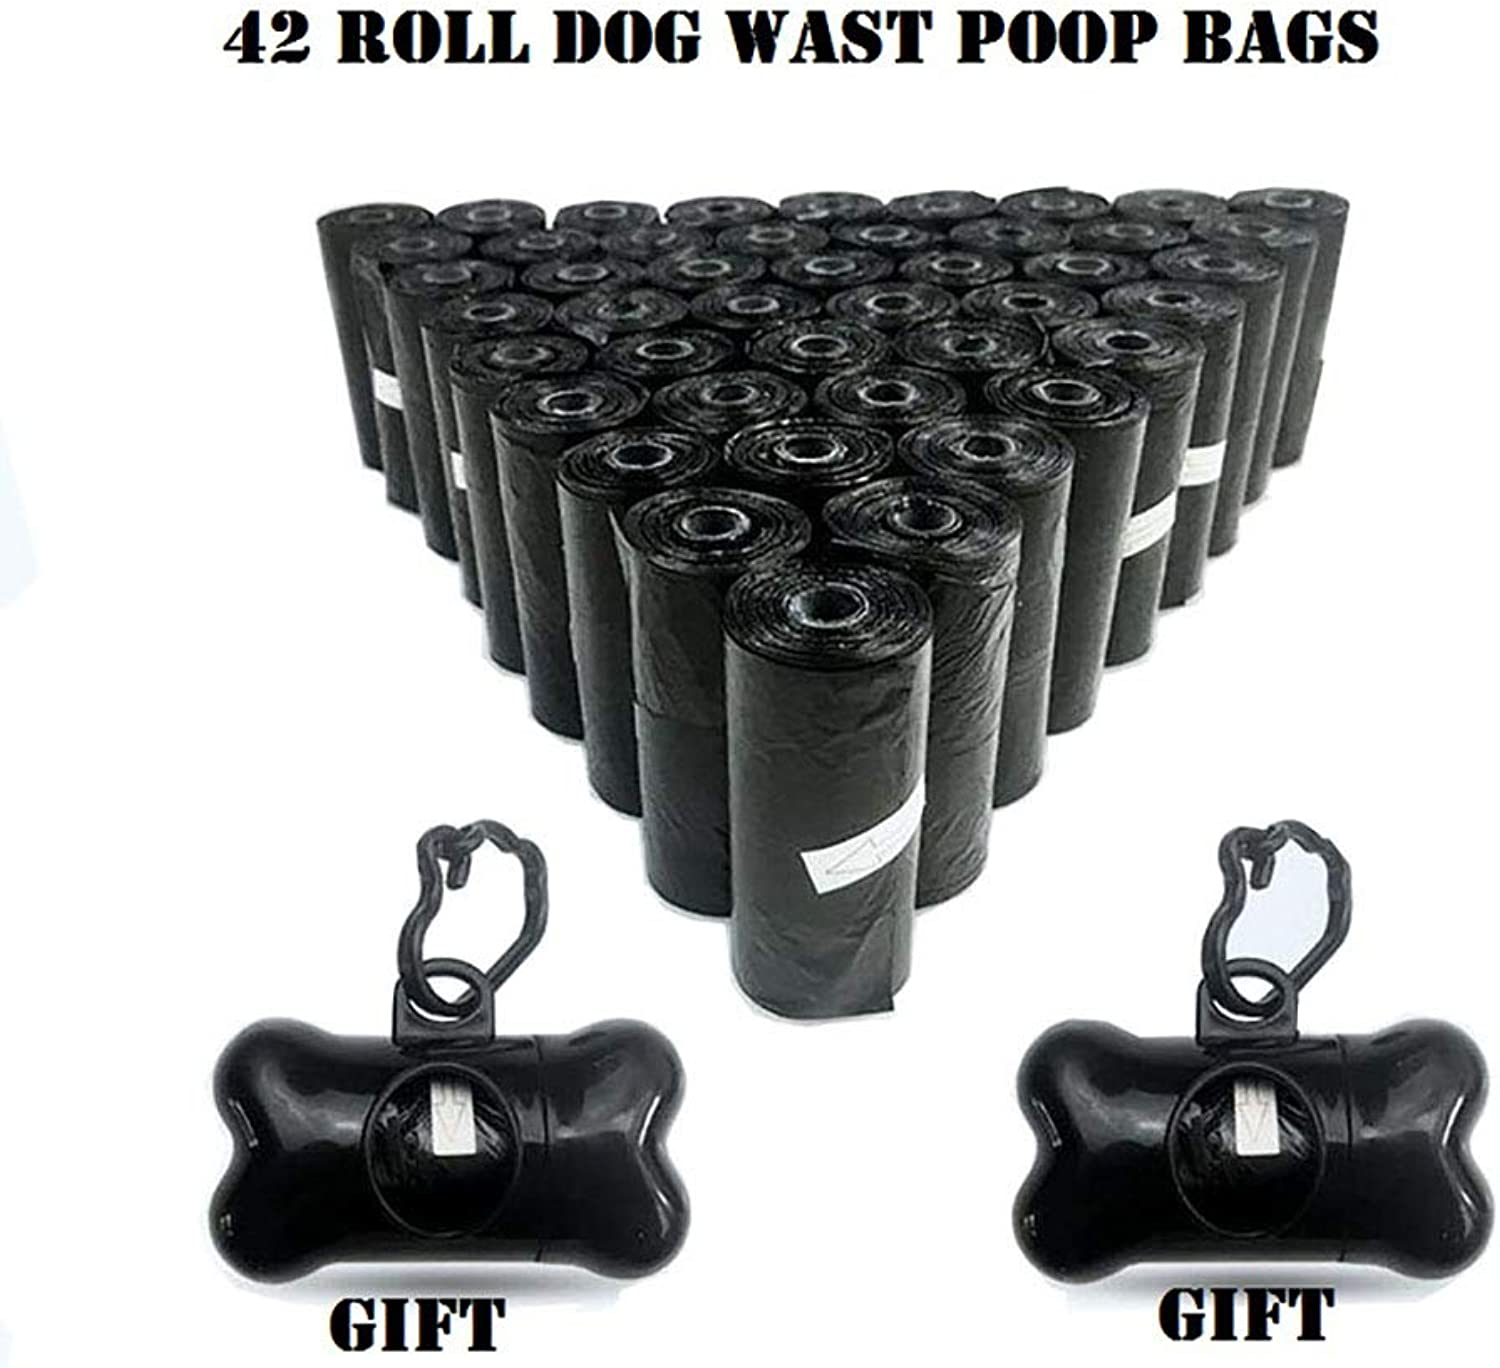 New 42 Rolls Dog Waste Bags with Dispenser and Leash Clip, Poop Bag Pet Durable Refill Rolls Black Pooper Scoopers,630COUNT